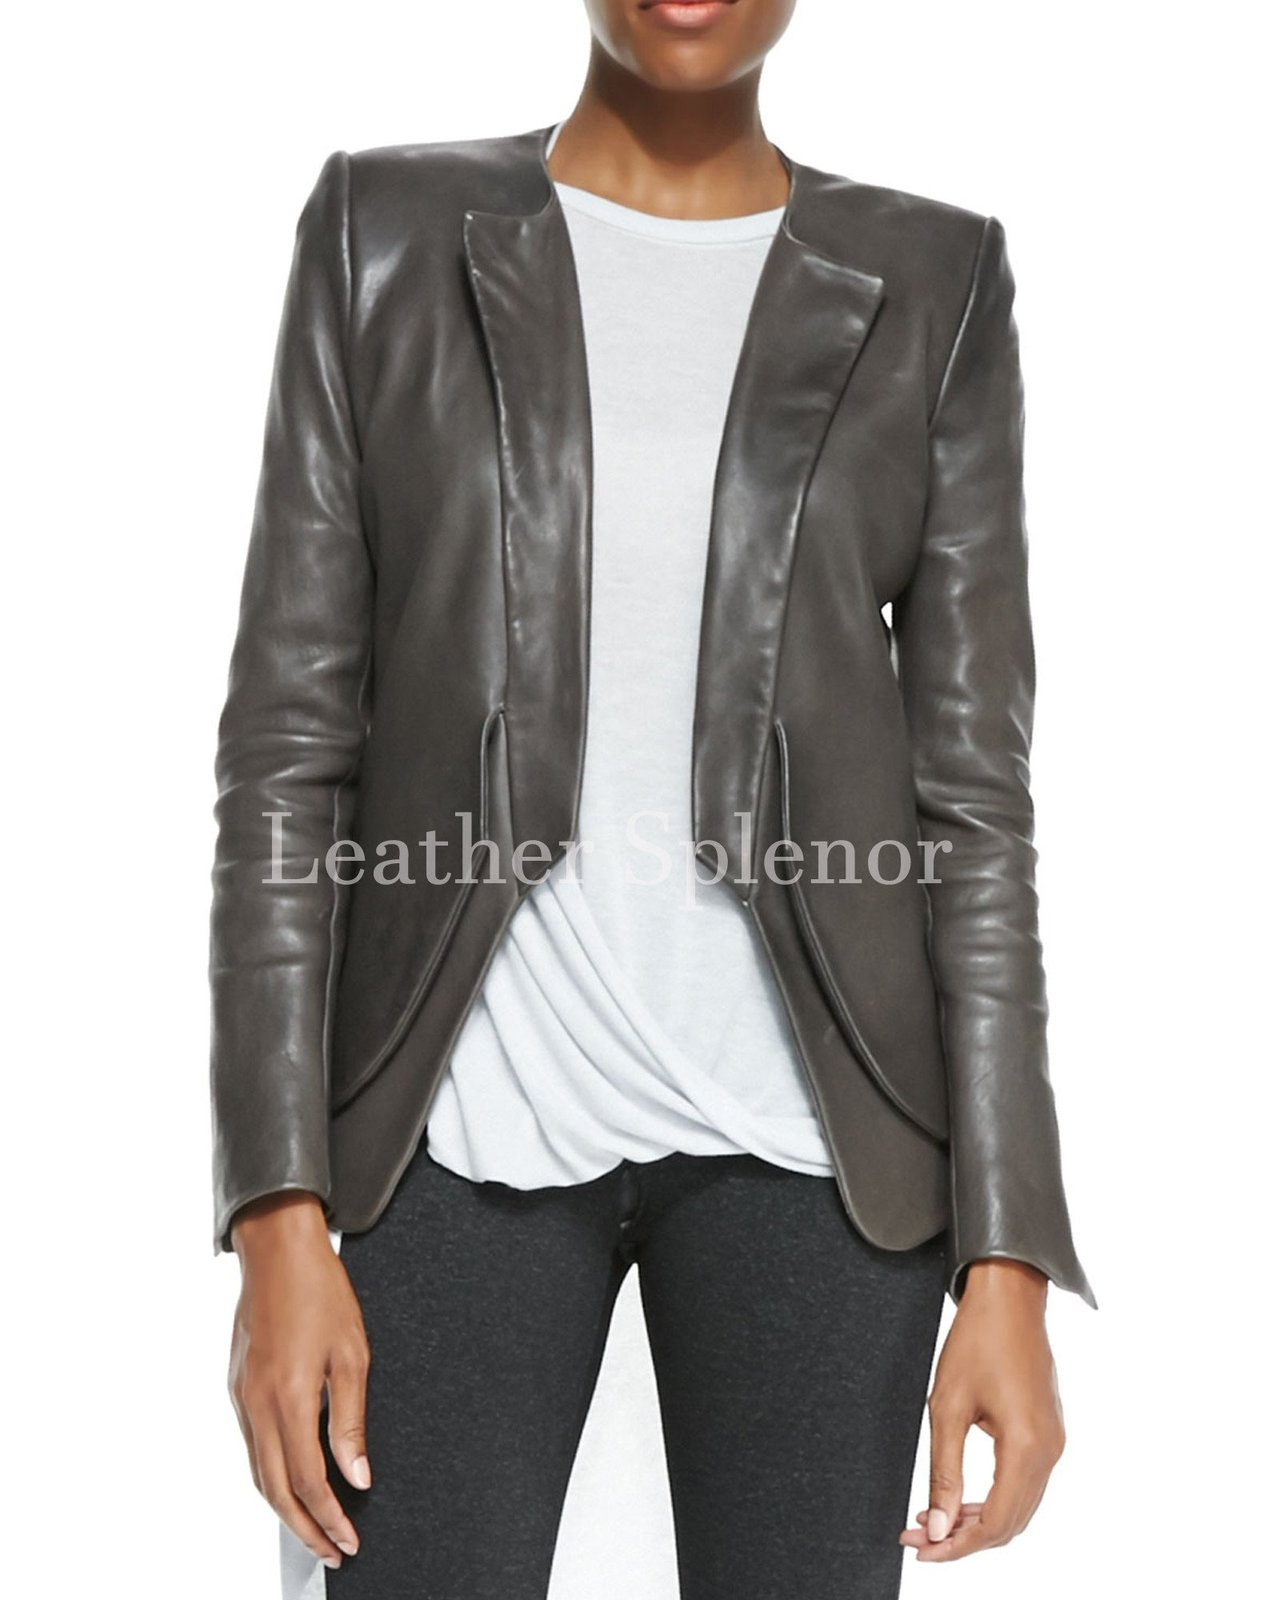 Designer Style Women Leather Blazer